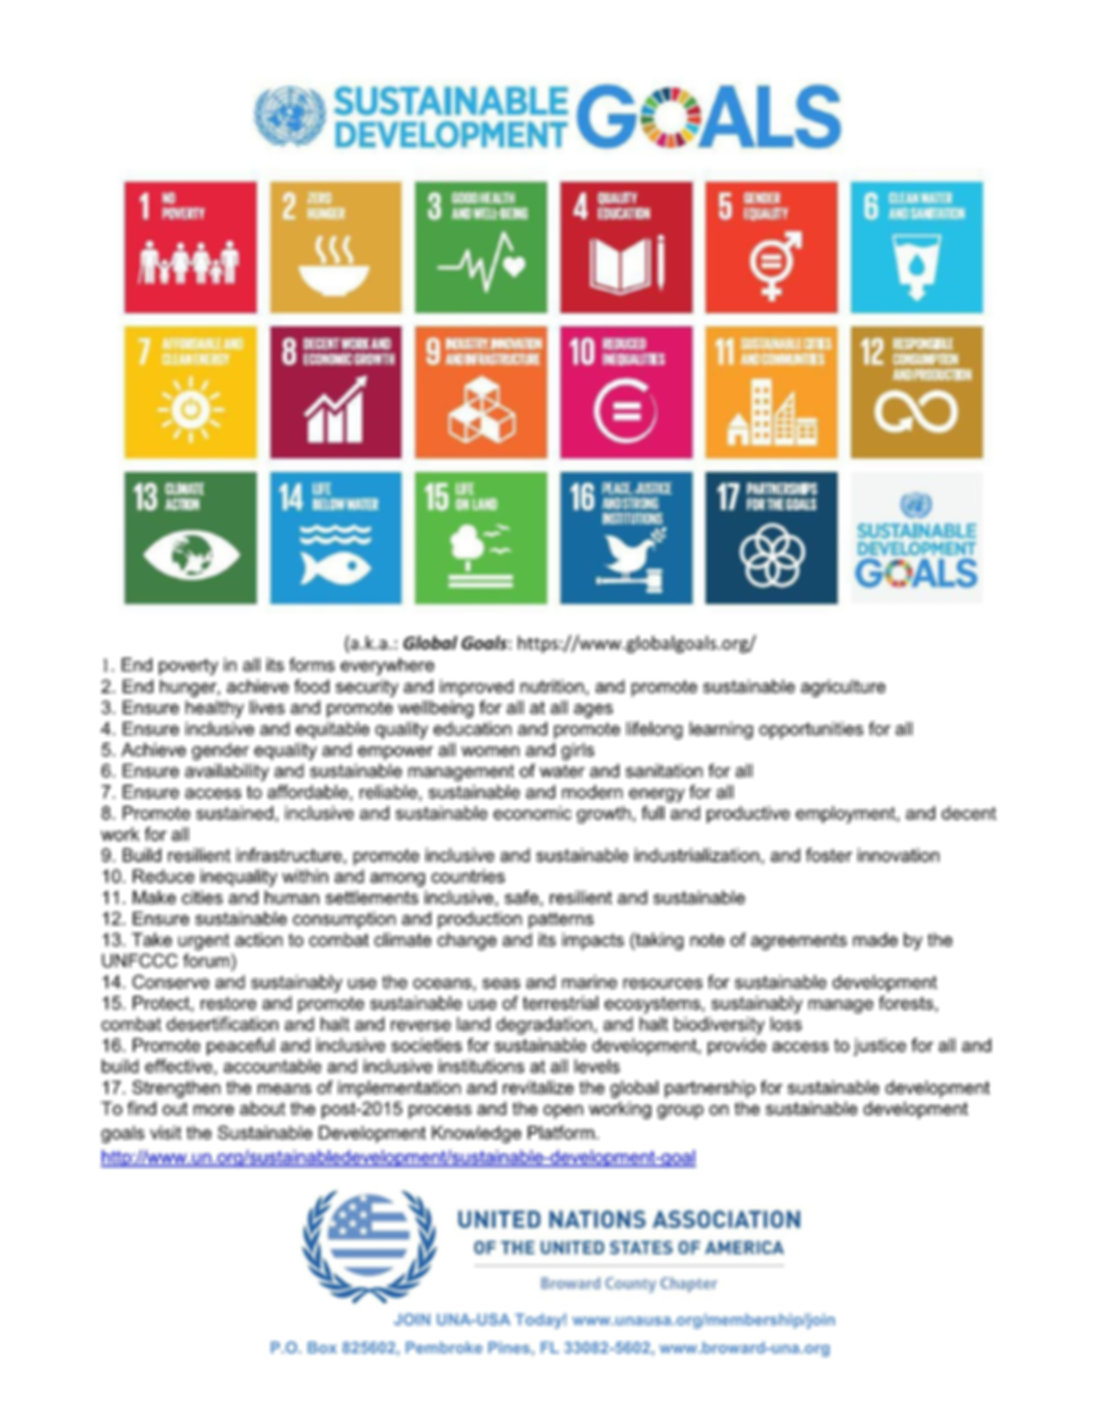 Sustainable Development Goals - Global G